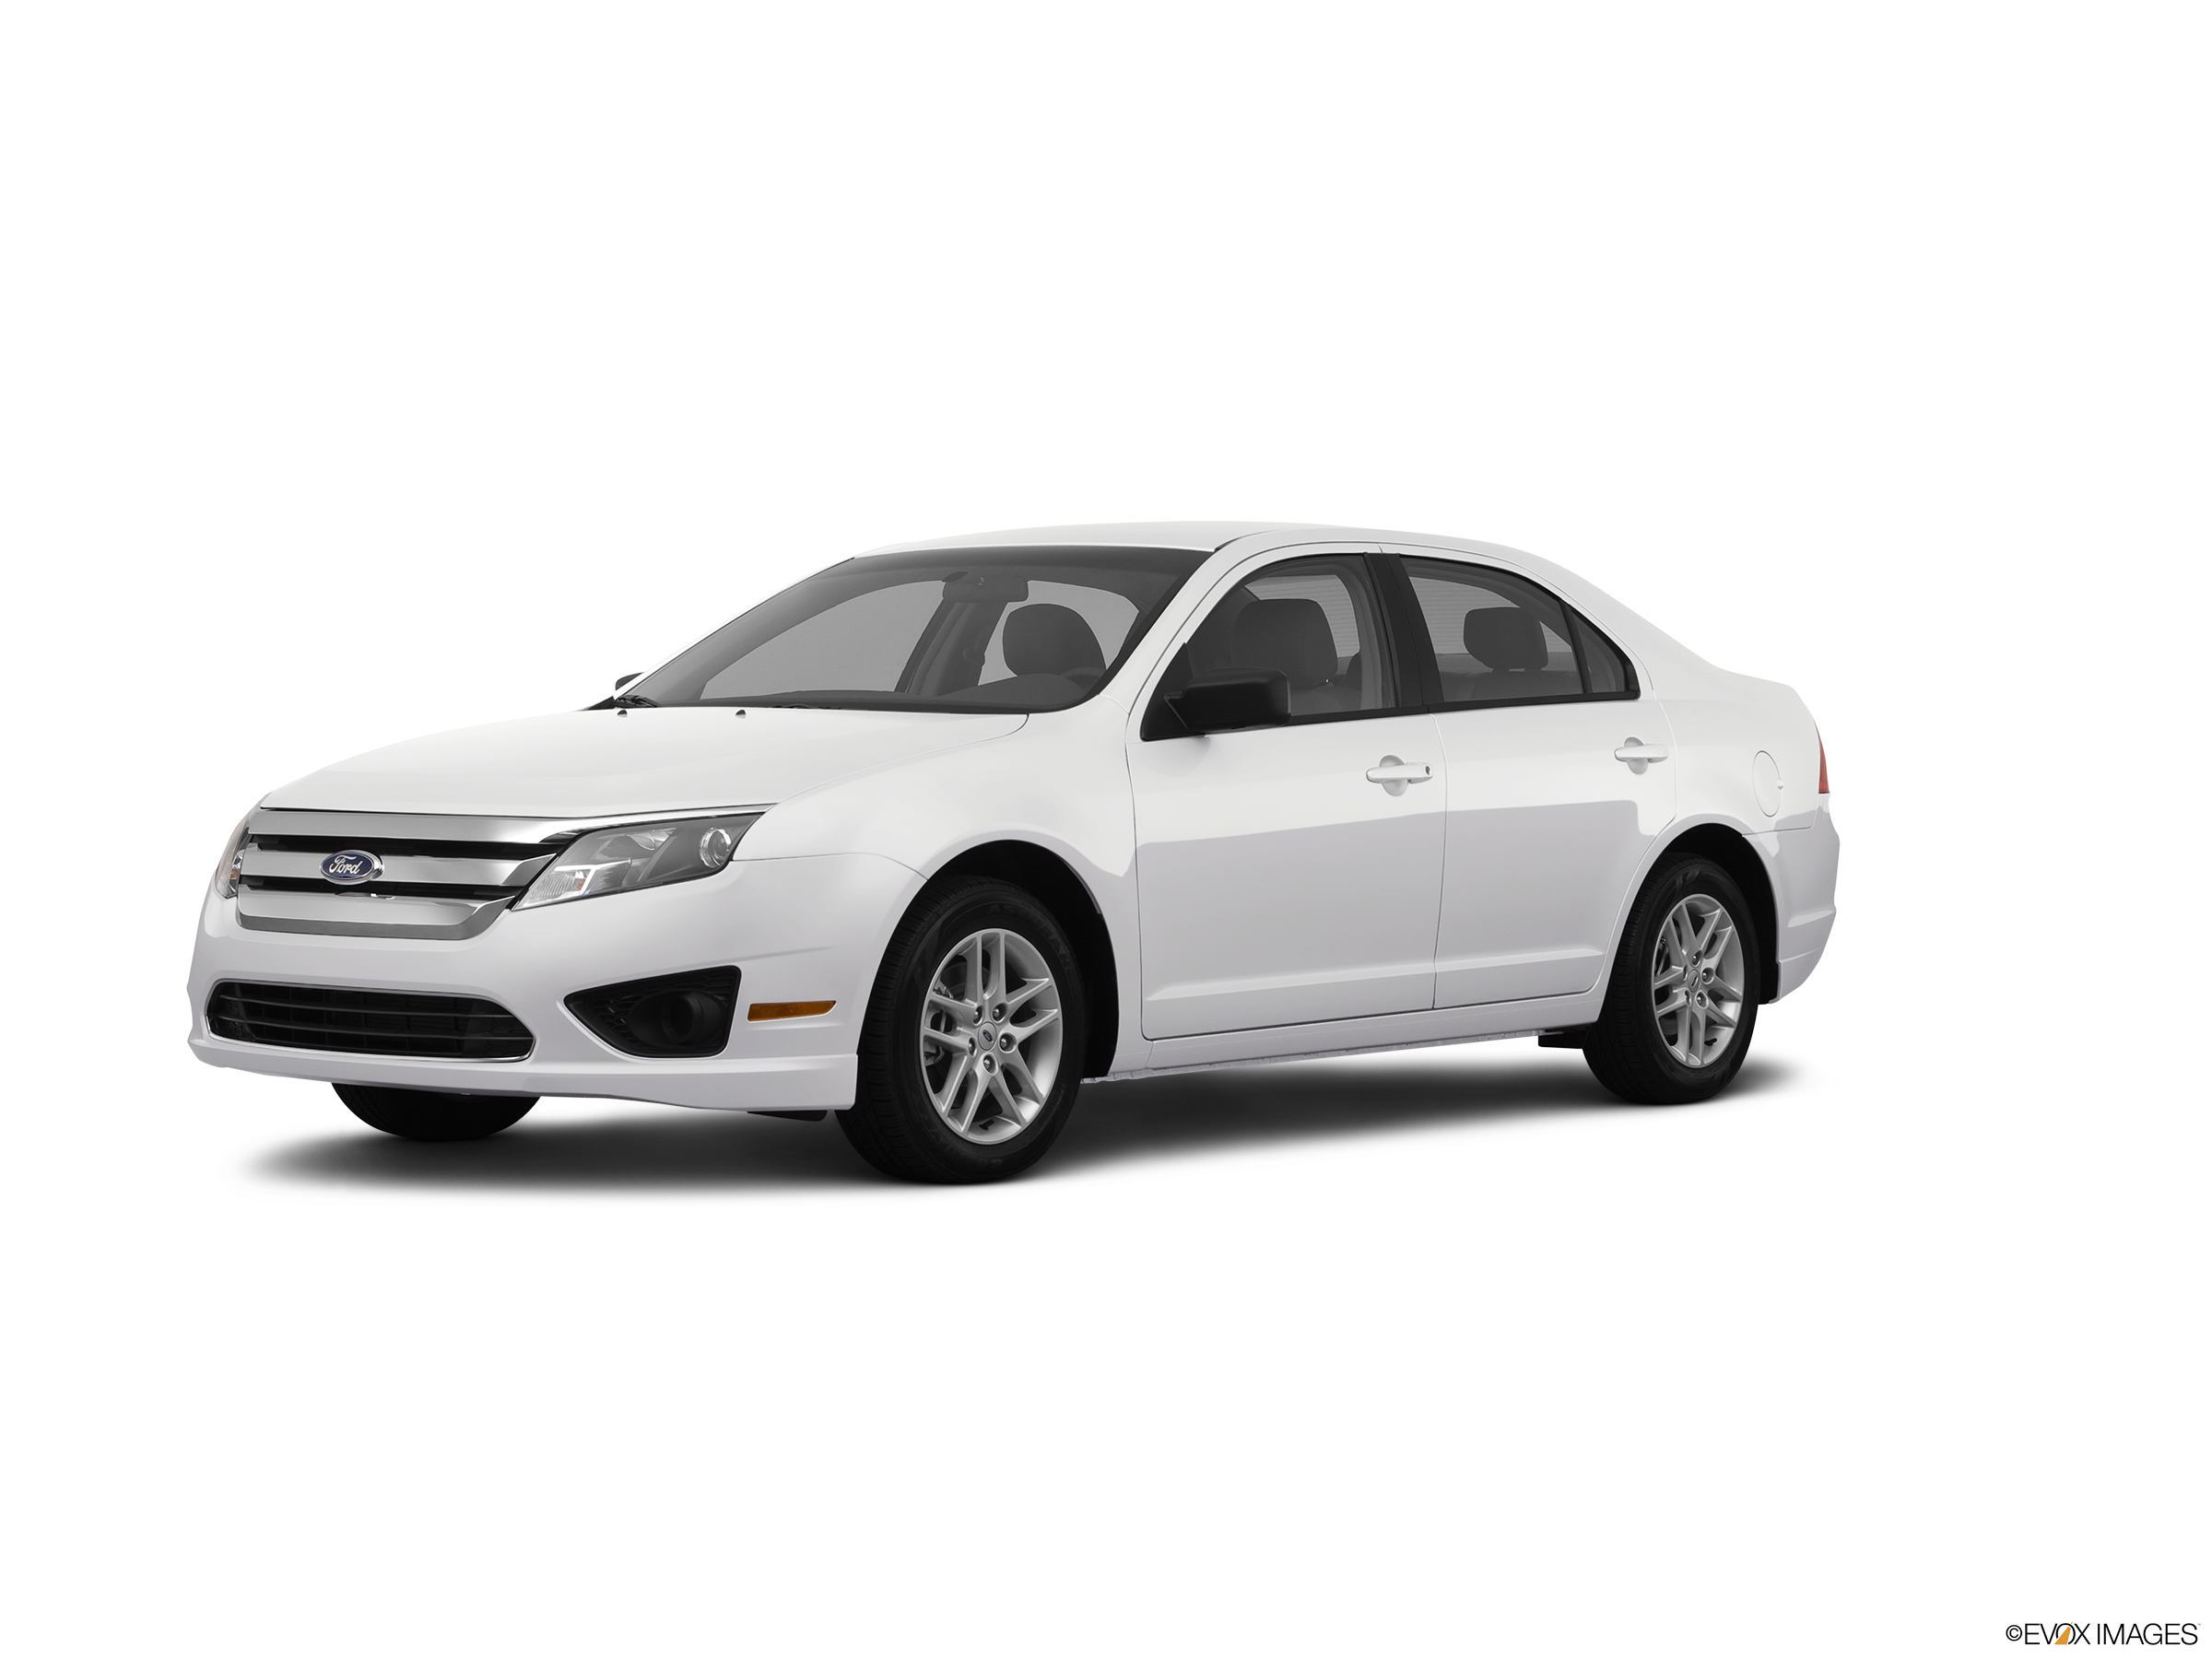 2012 Ford Fusion Values Cars For Sale Kelley Blue Book